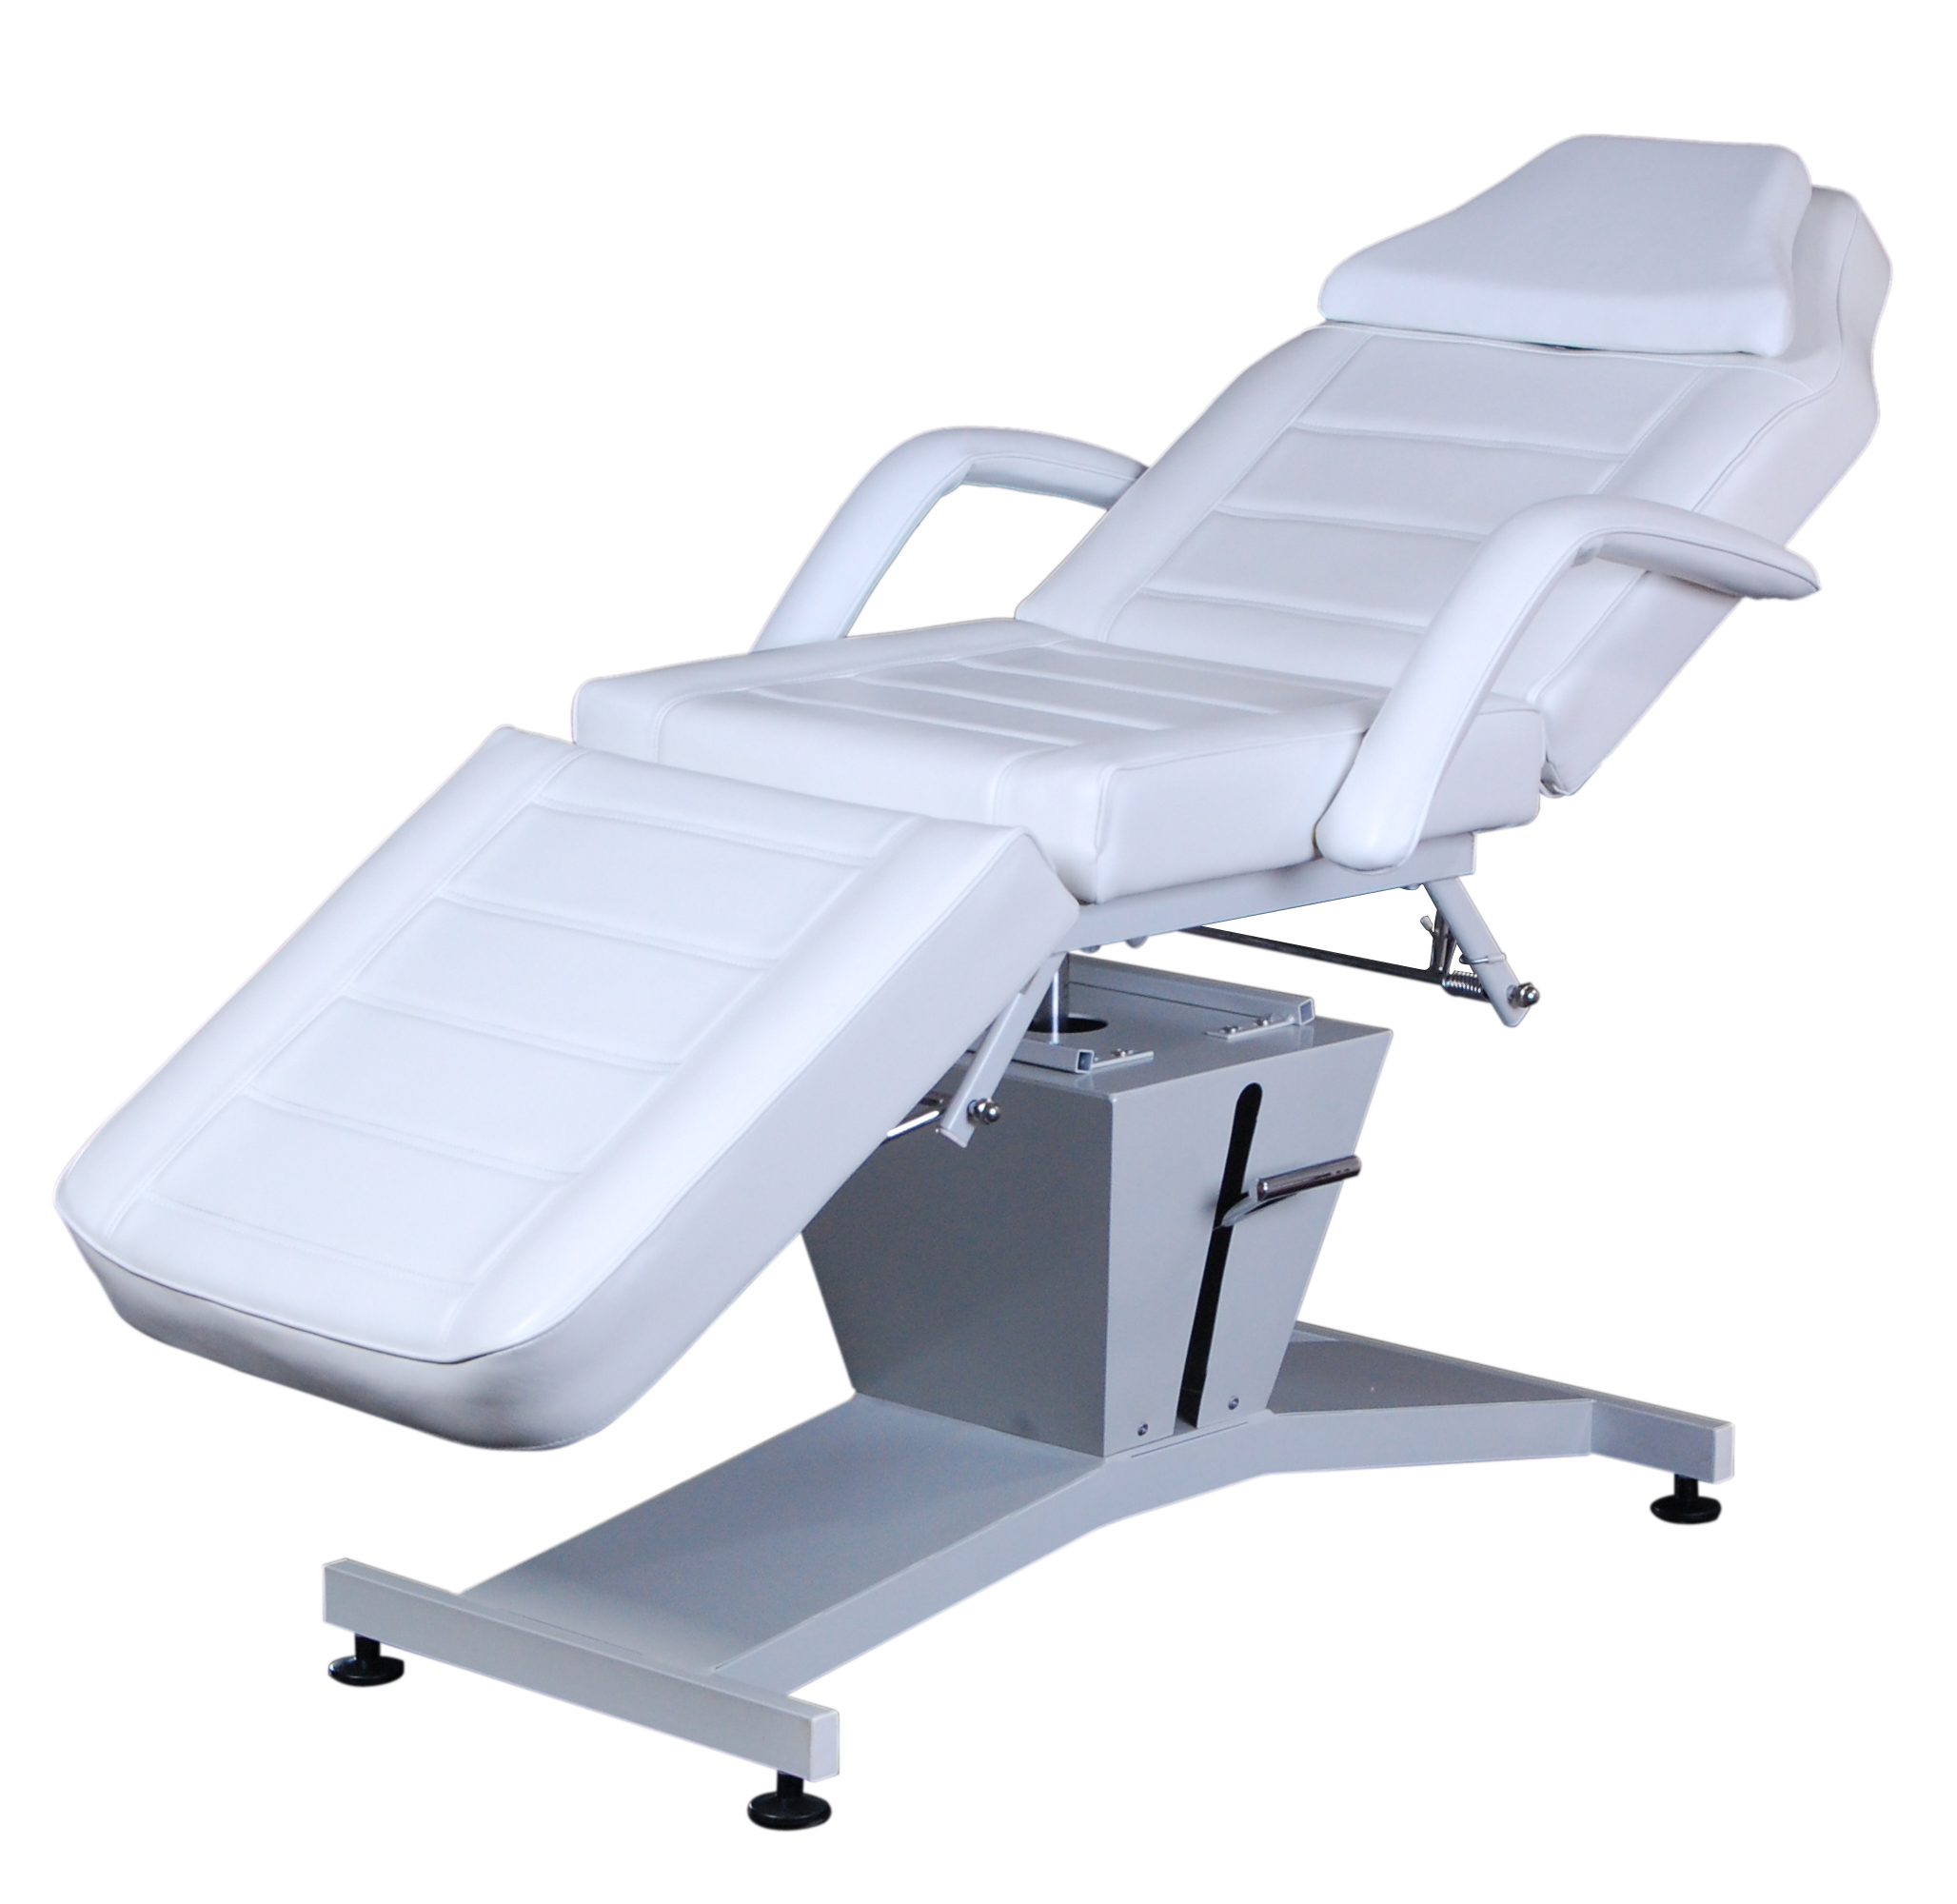 Elite Hydraulic Pro Aesthetic Spa chair bed Salon Furniture